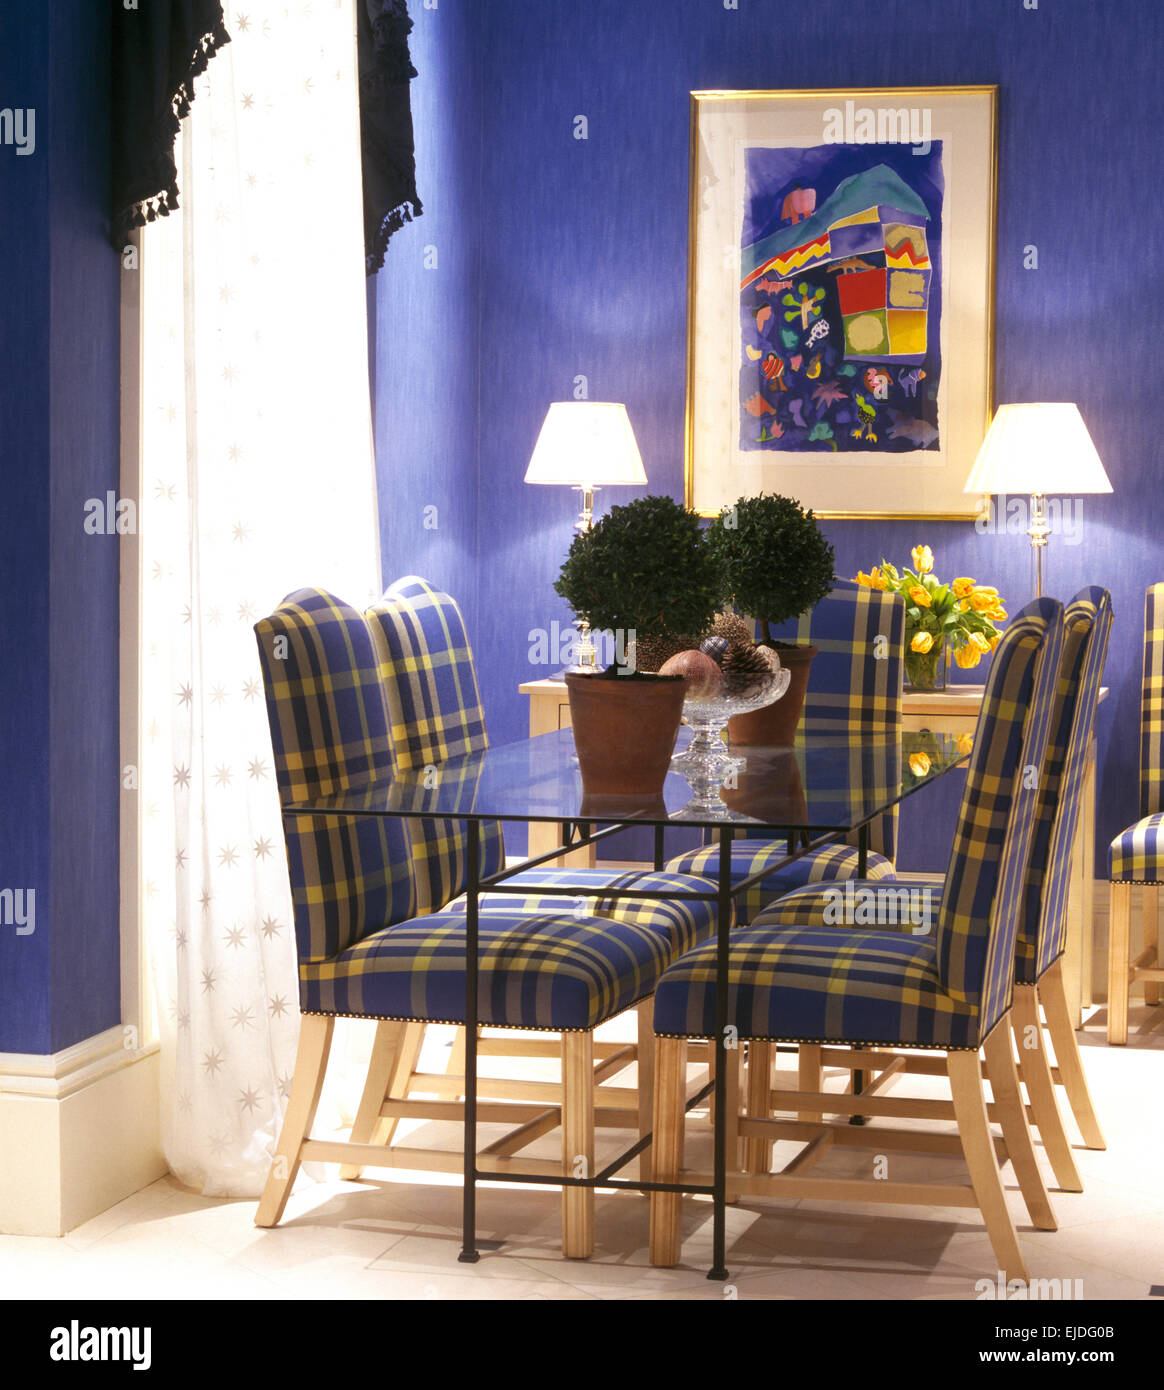 Plaid Upholstered Chairs At Glass Topped Table In Cobalt Blue Nineties  Dining Room